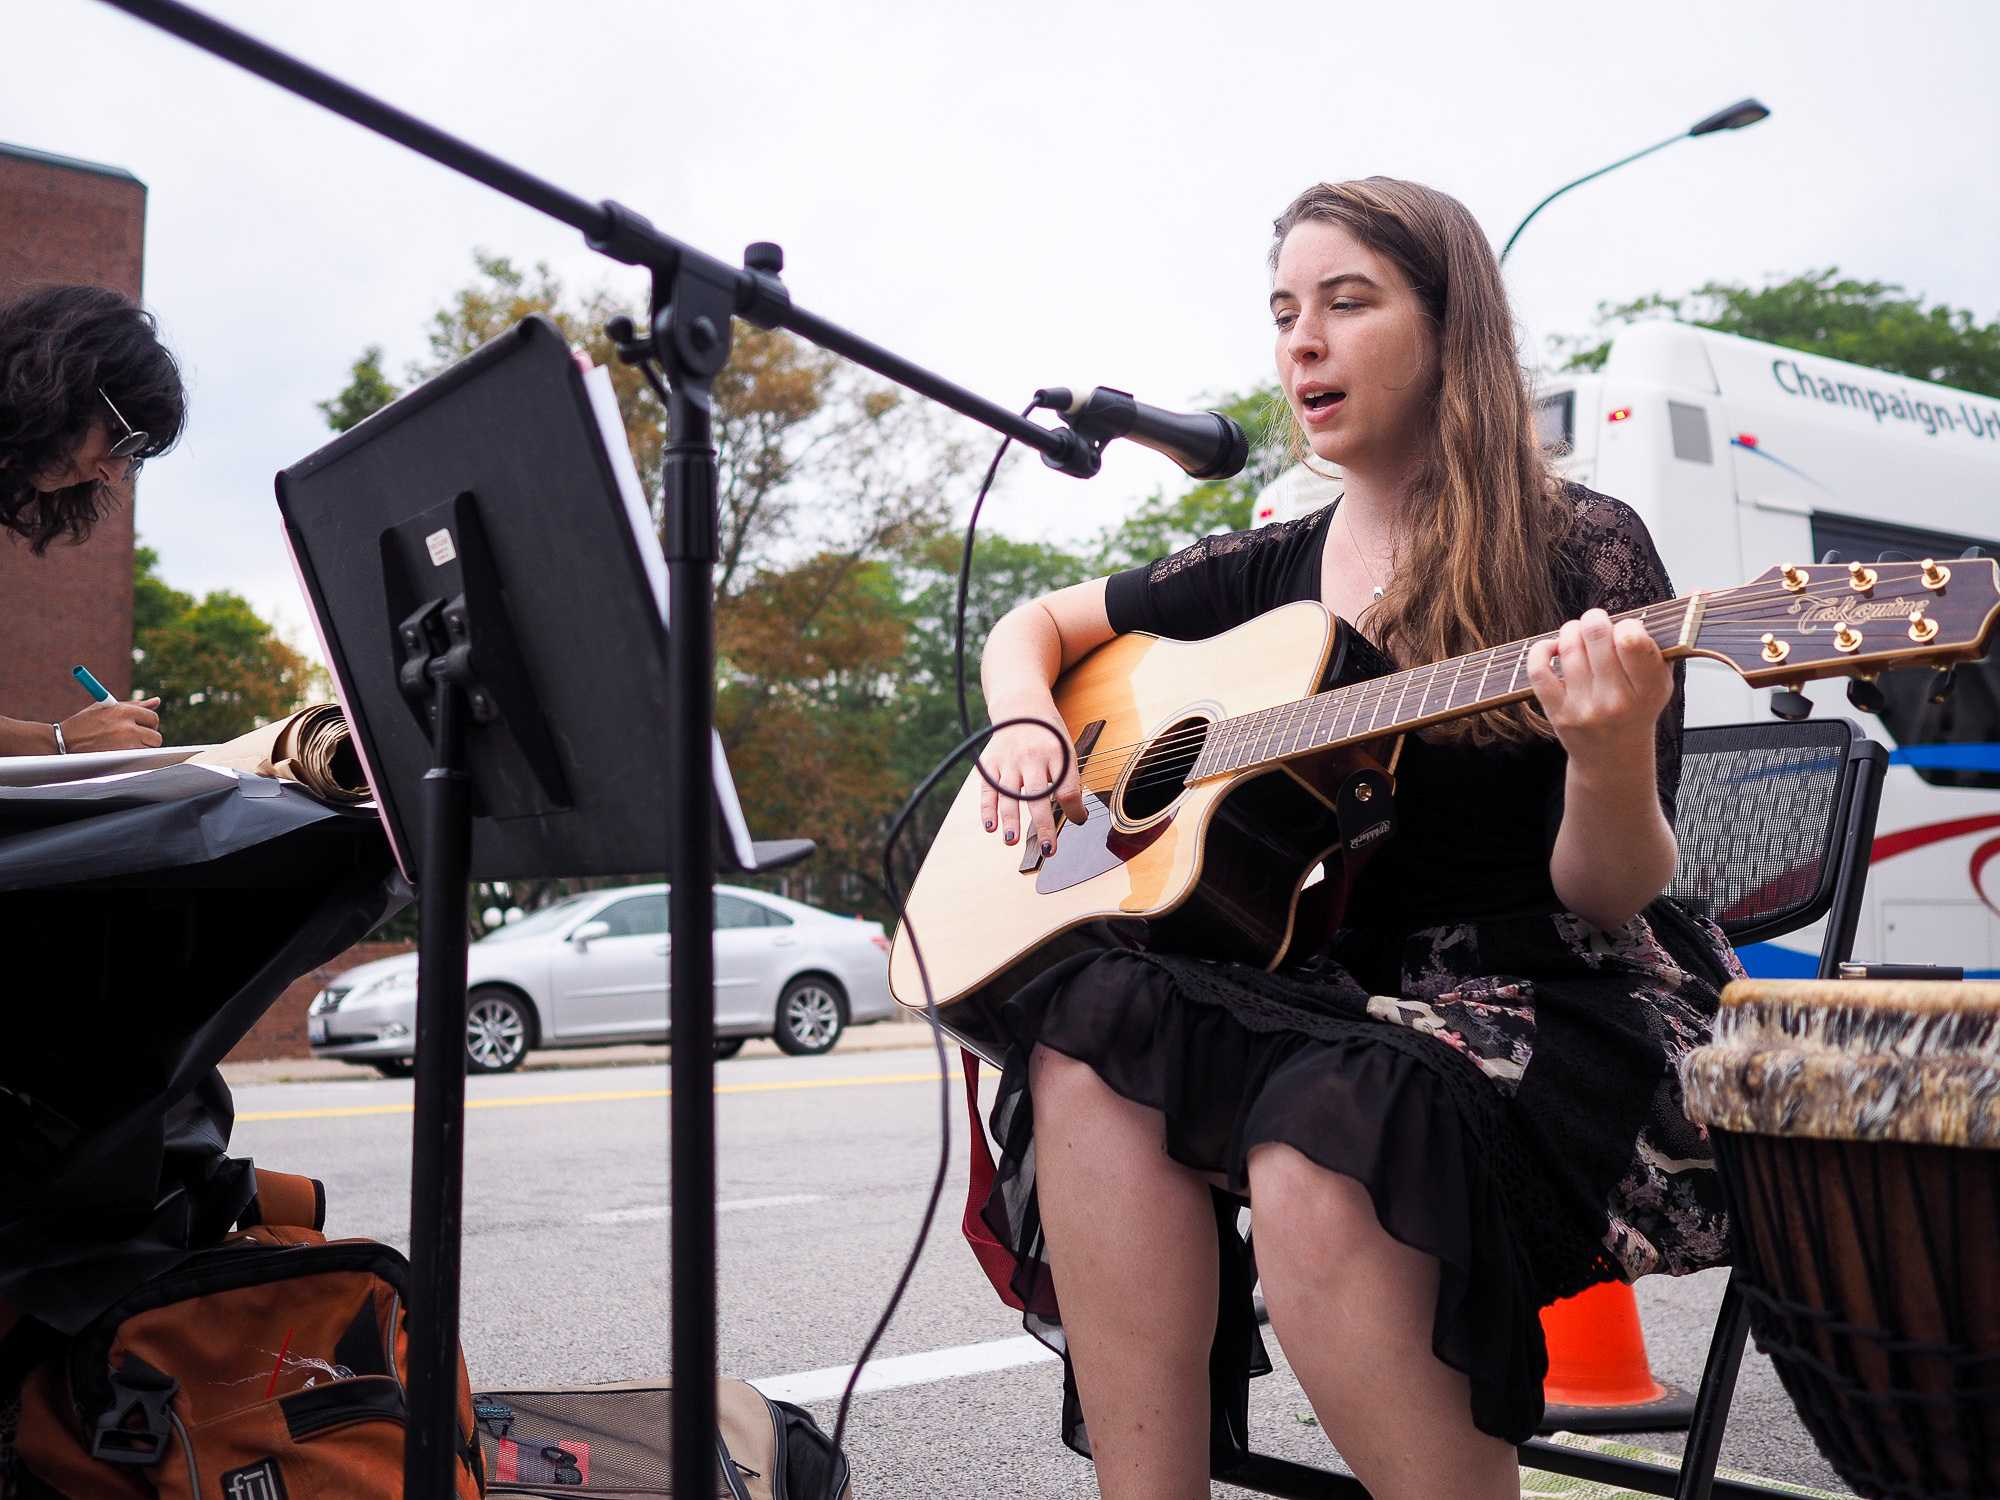 Rachel Wilson, a second year masters student in Urban Planning, performs on Goodwin Avenue for Parking Day in Urbana, IL on September 16, 2016.